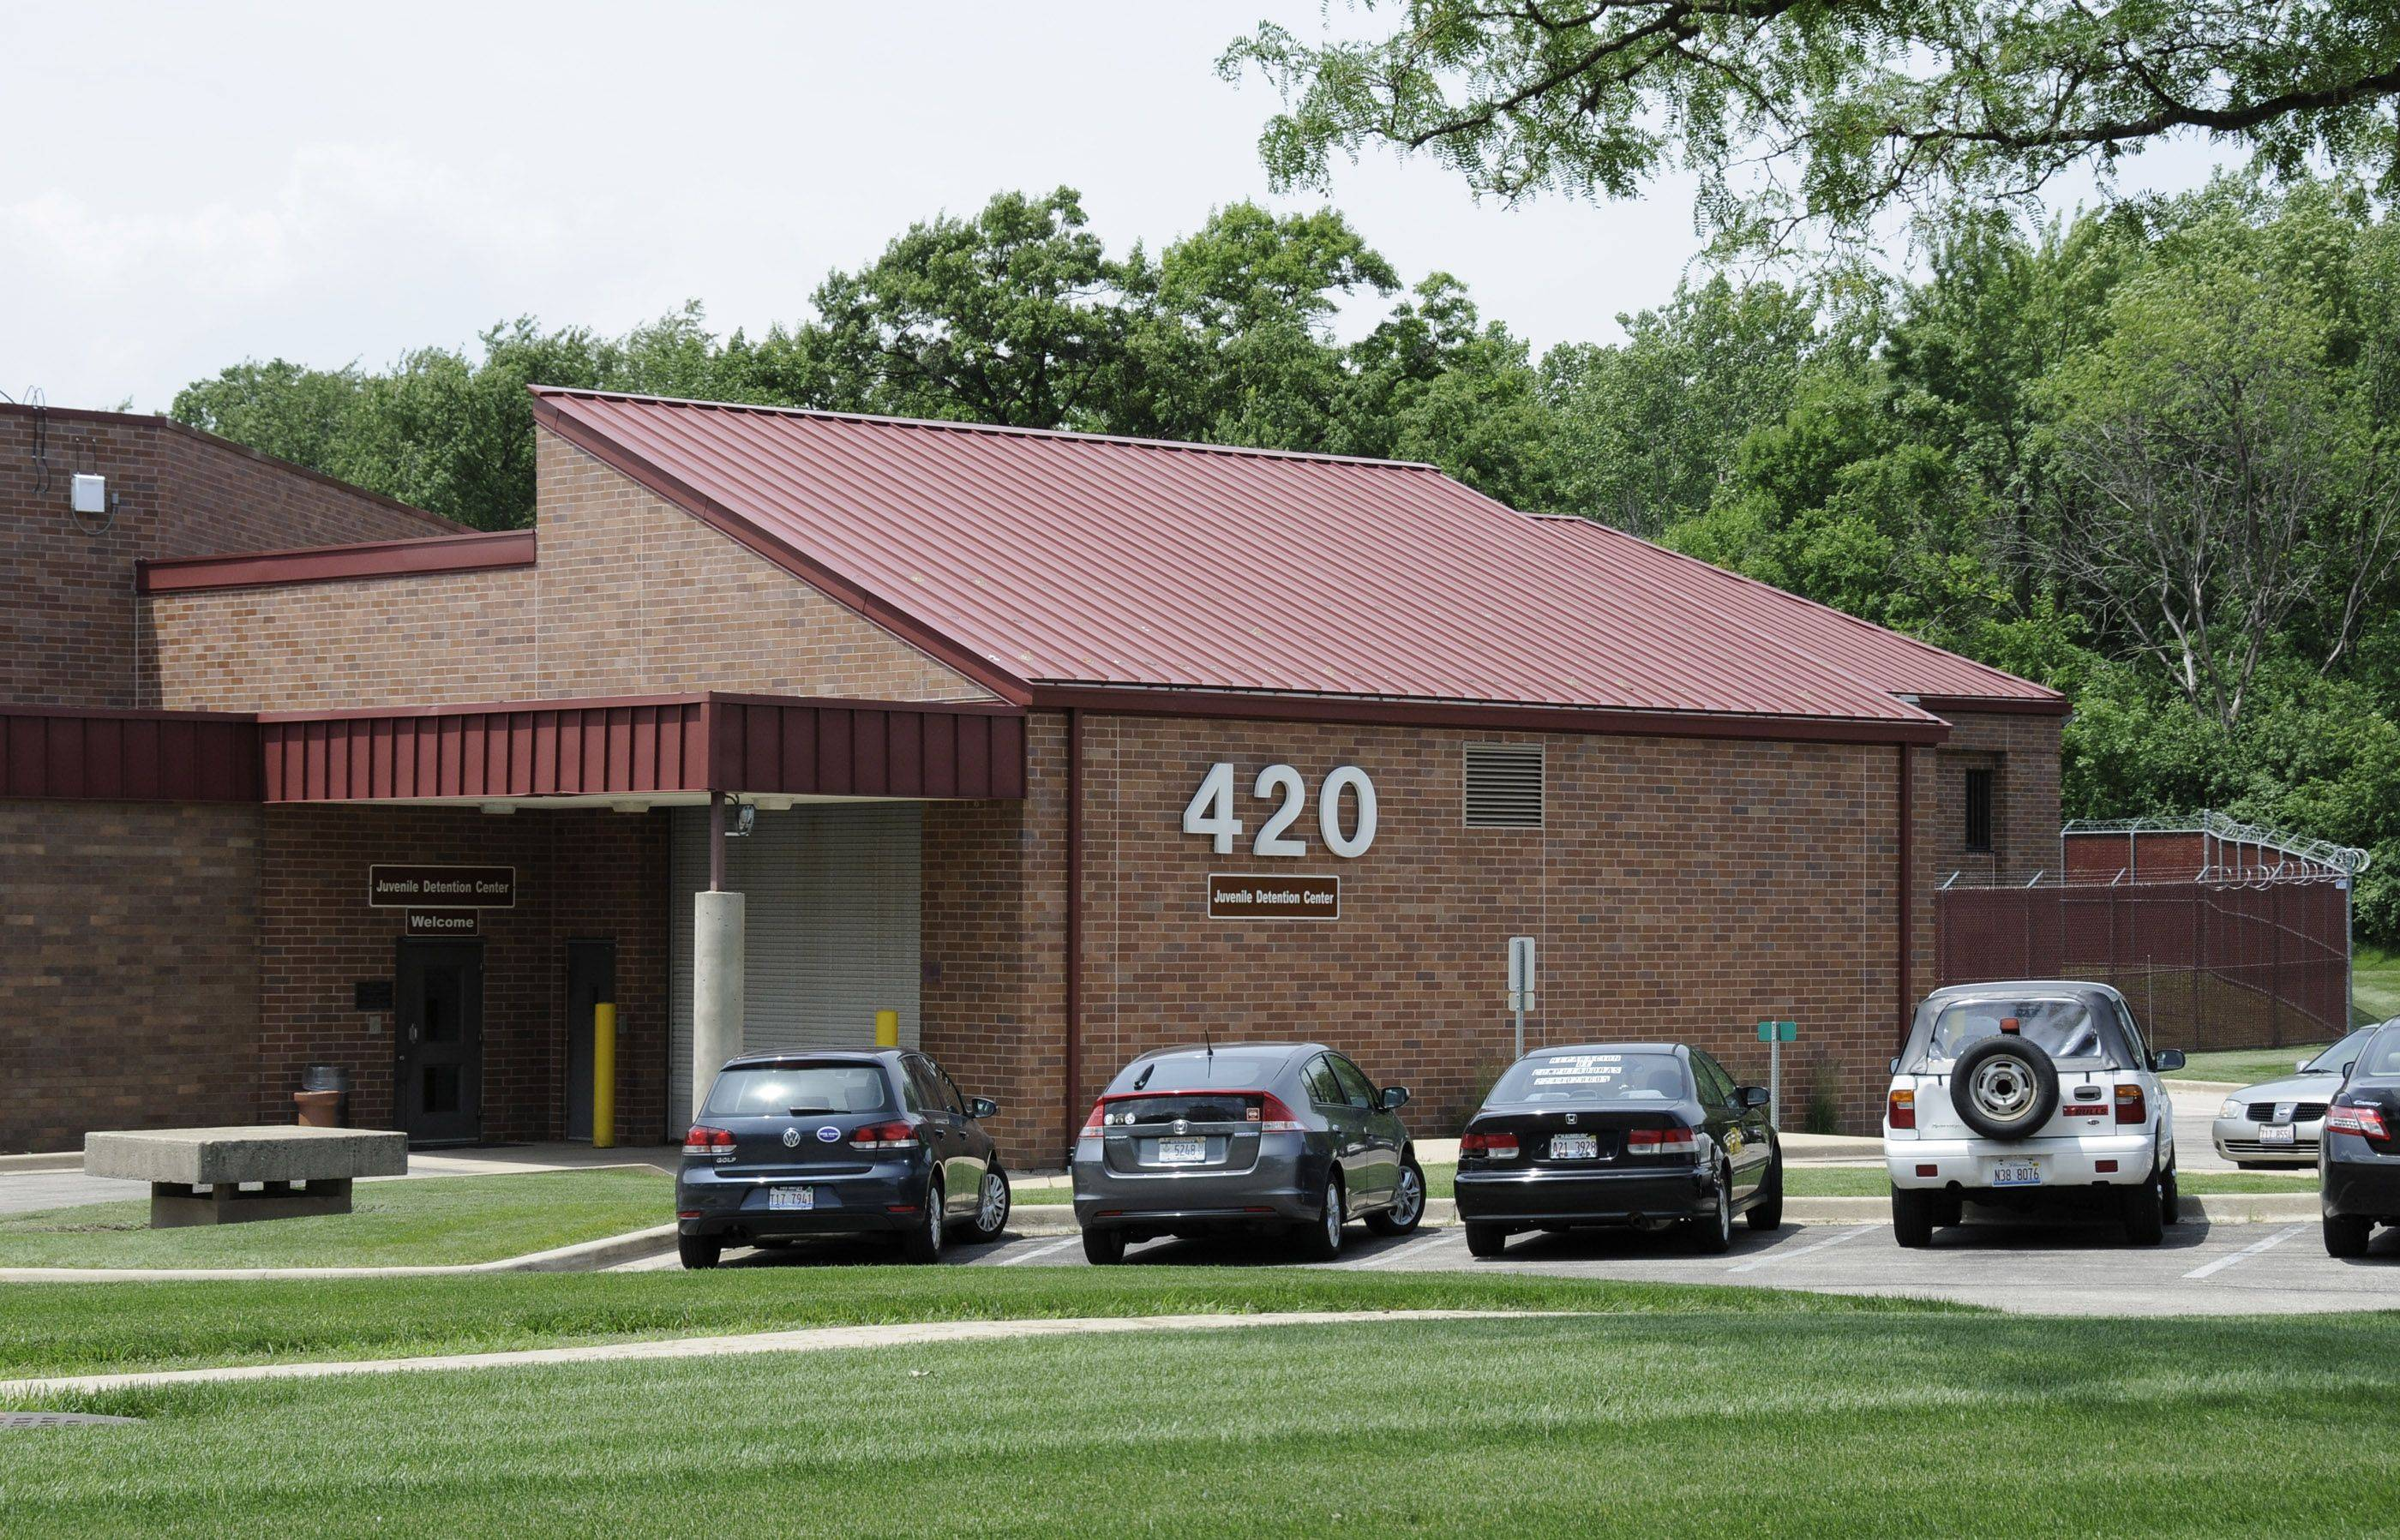 DuPage OK's youth home, spending cuts